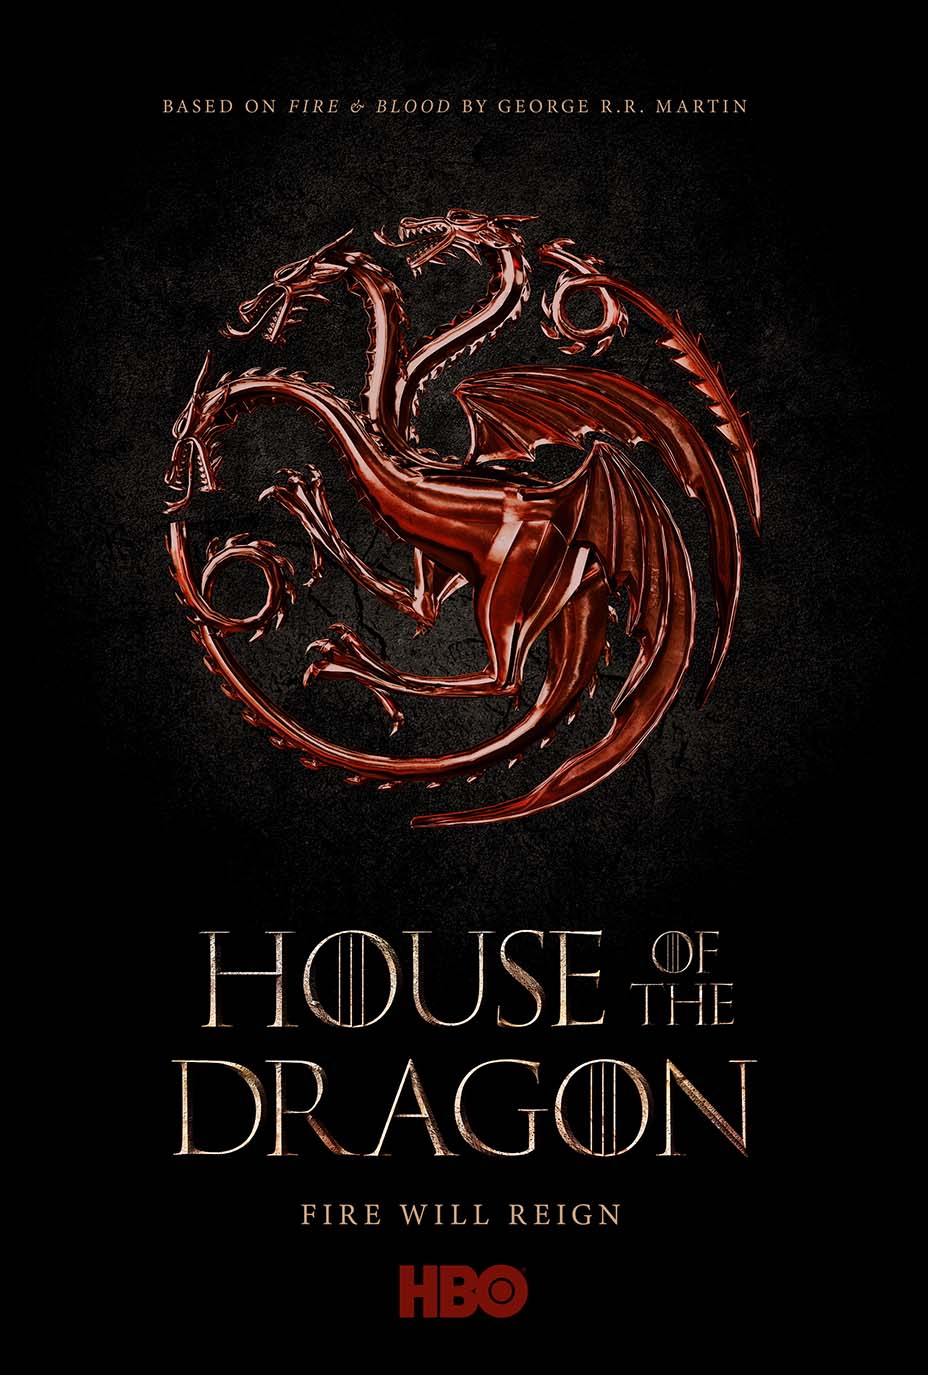 Game of Thrones, House of the Dragon